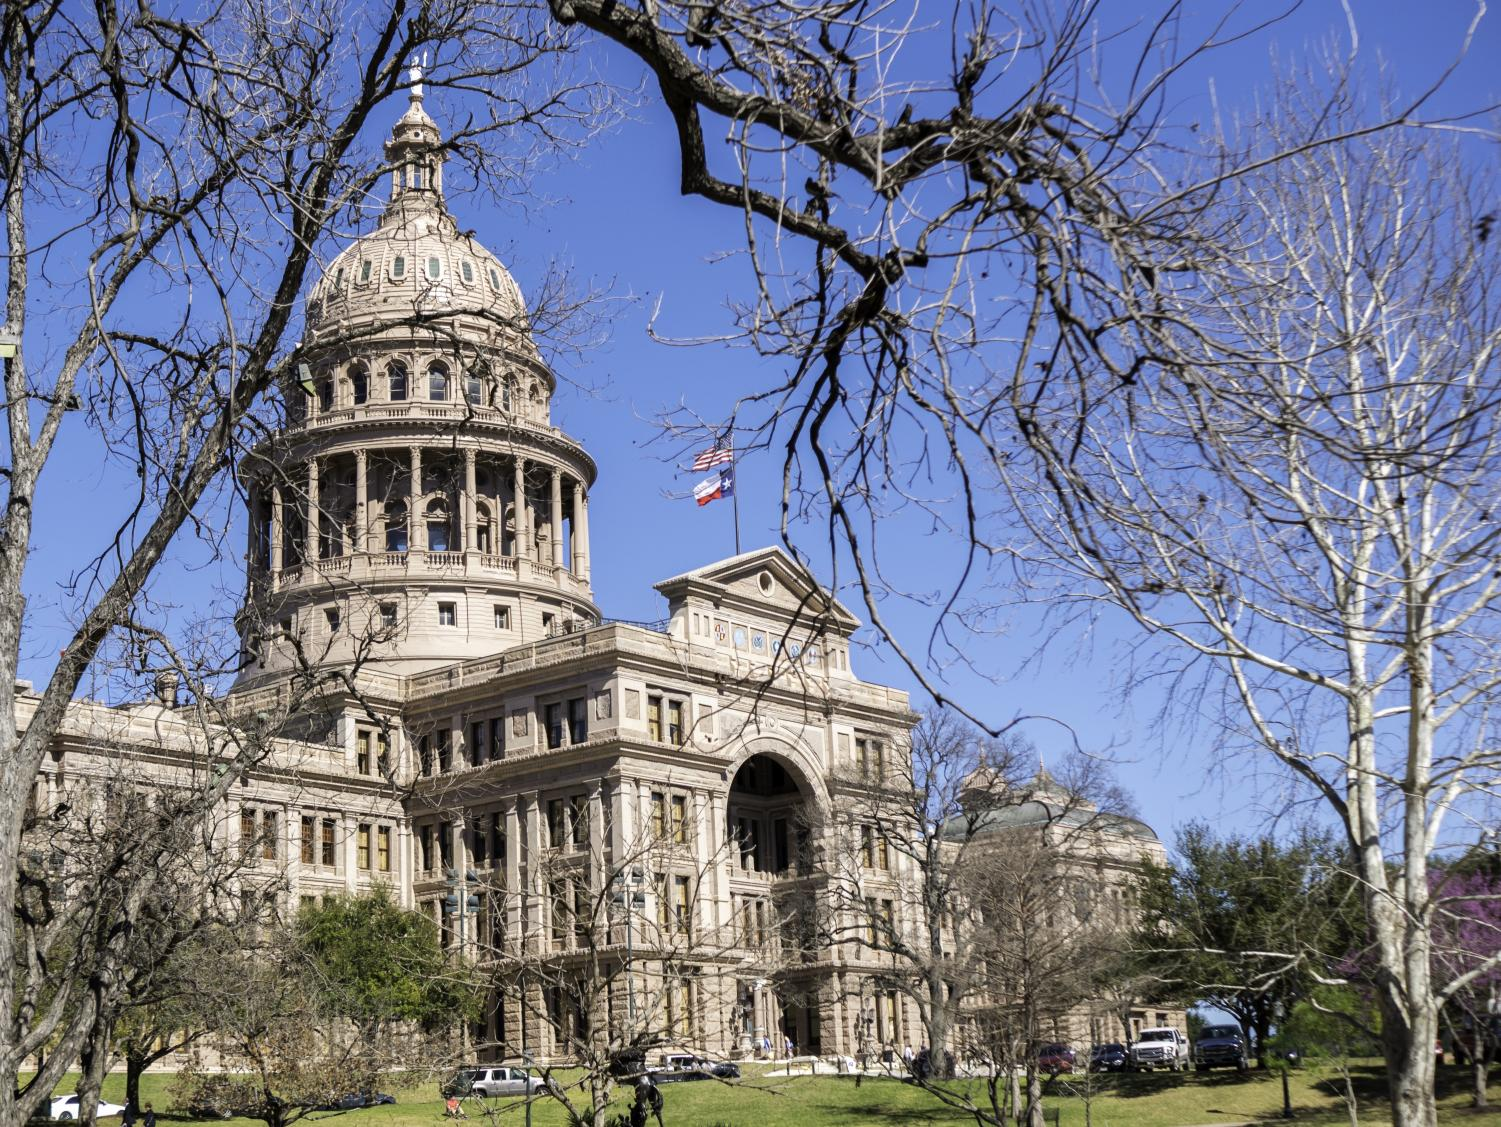 The controversial law that the state has accused San Antonio of violating, SB4, was signed by Governor Abbott in May of last year.